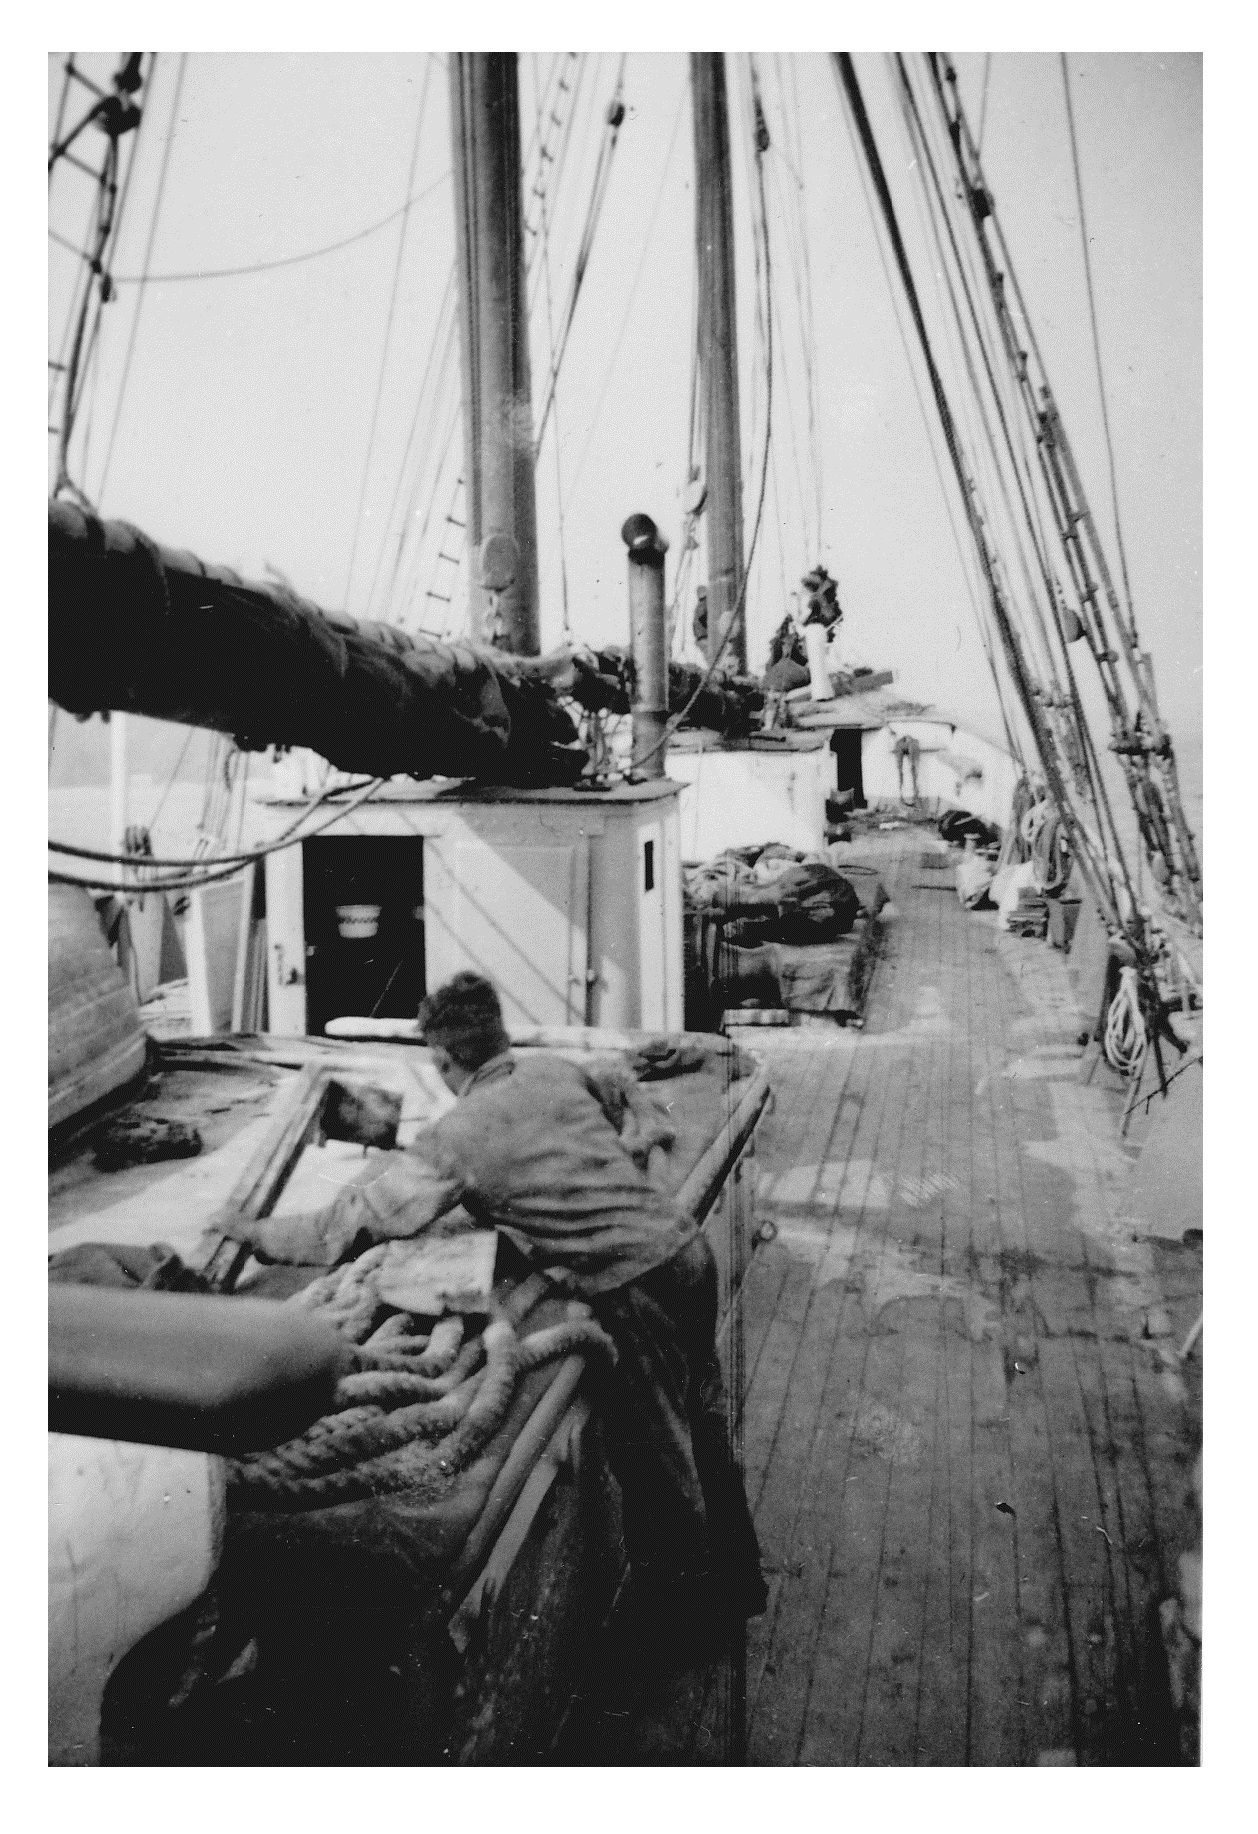 Mystery of the Marie Celeste: Paddy, one of the crew